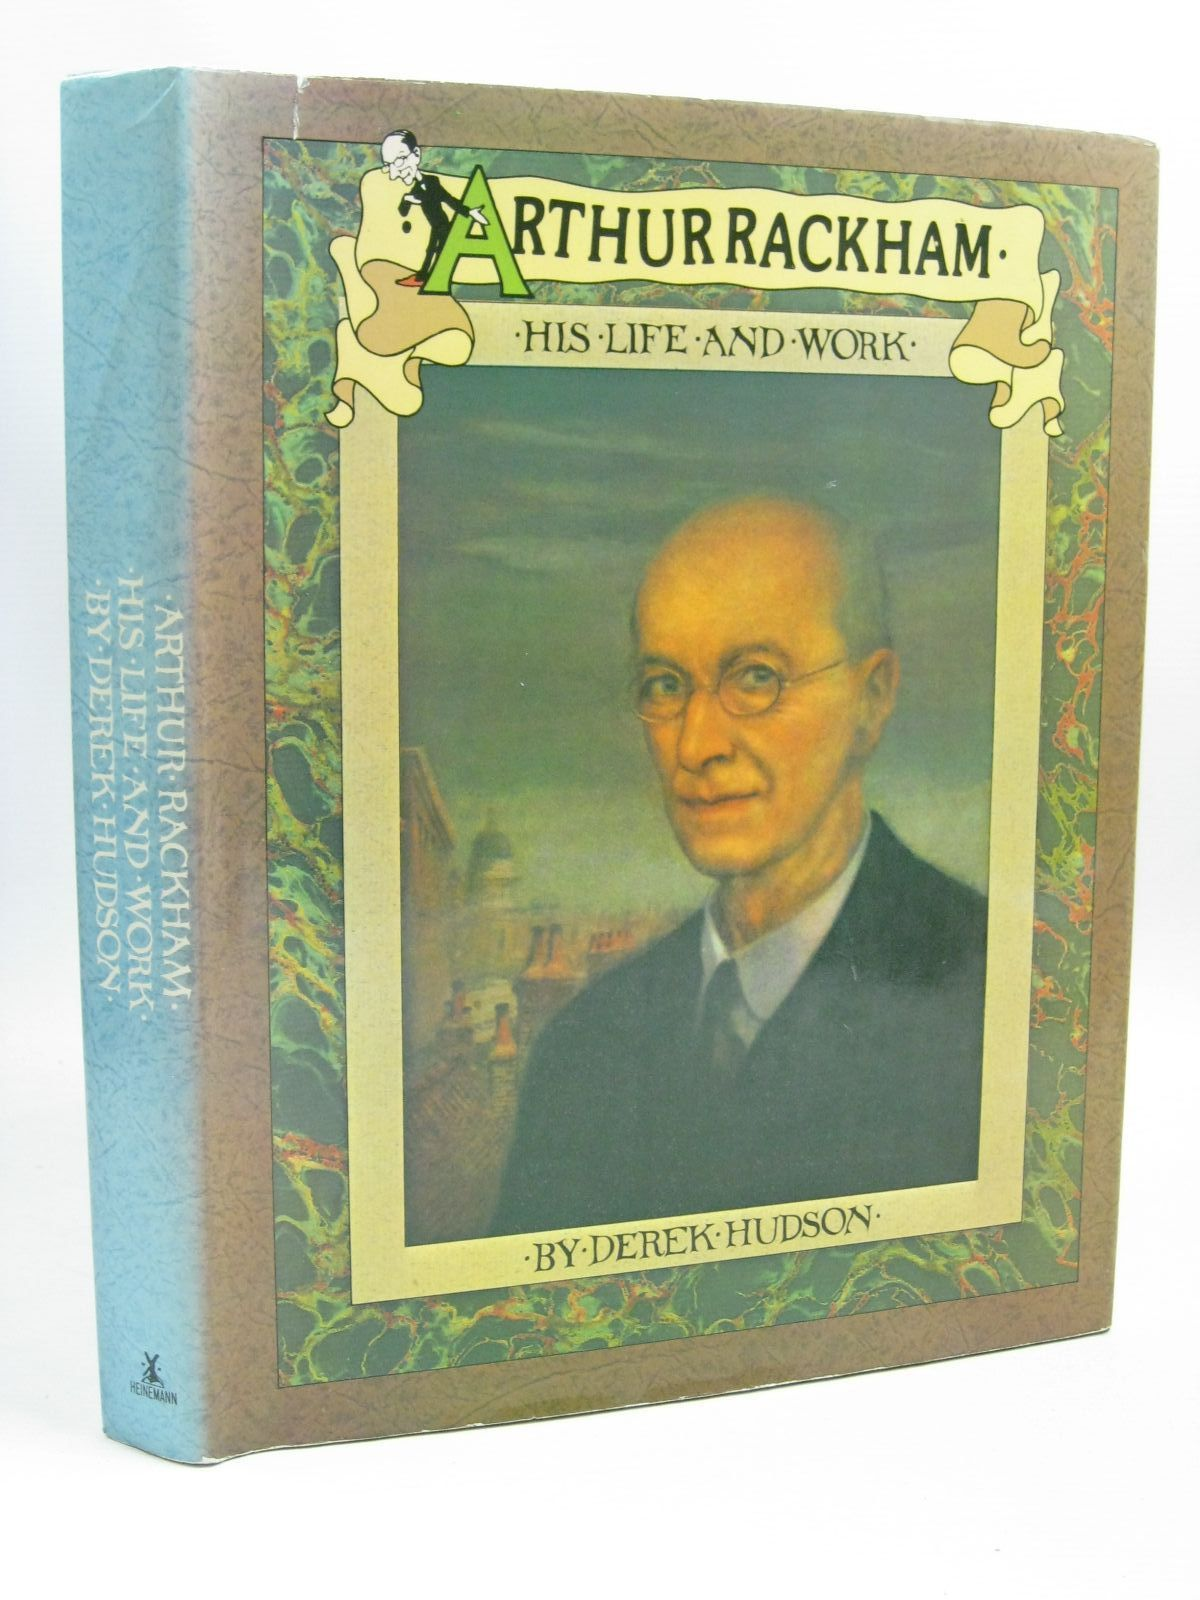 Photo of ARTHUR RACKHAM HIS LIFE AND WORK written by Hudson, Derek illustrated by Rackham, Arthur published by William Heinemann Ltd. (STOCK CODE: 1316103)  for sale by Stella & Rose's Books